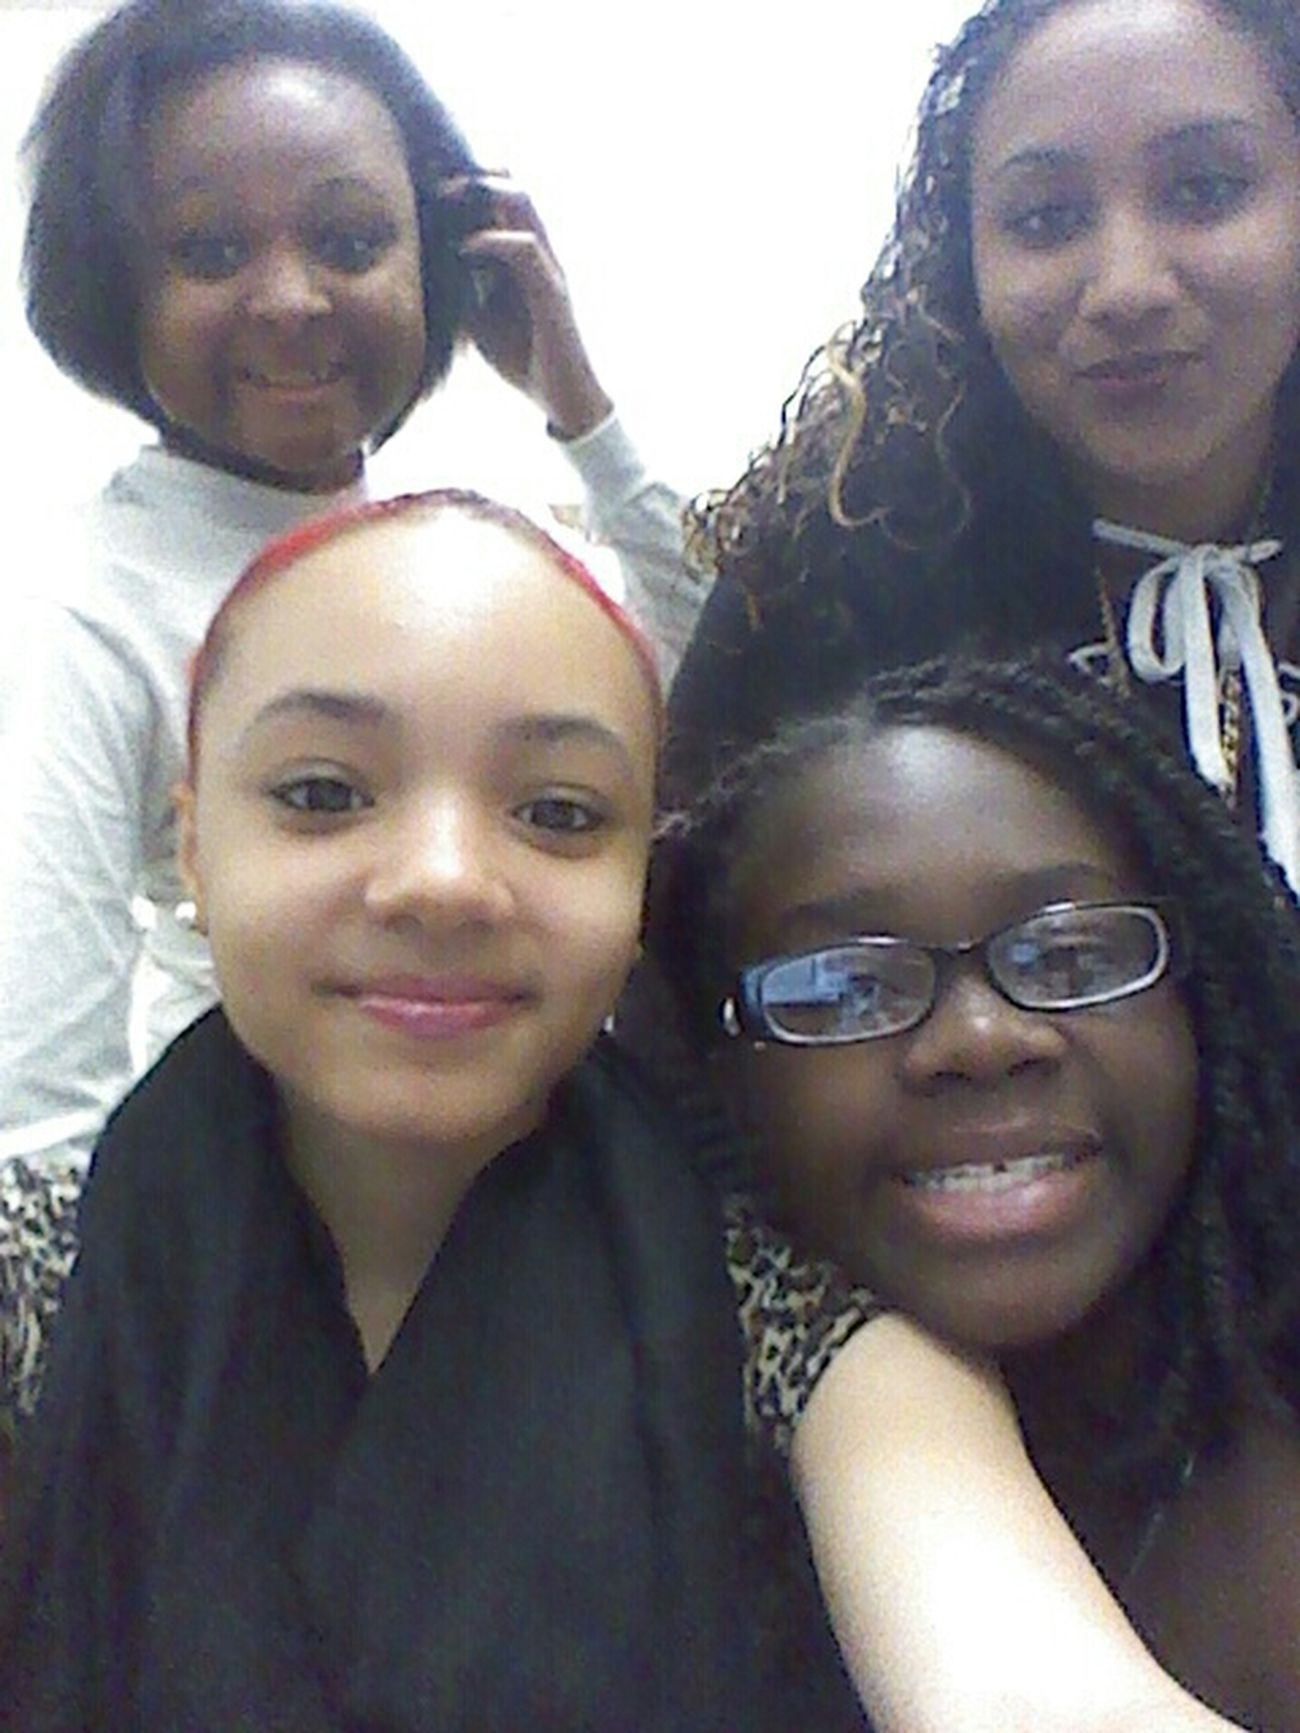 With aneesa, tanya & destiny :)